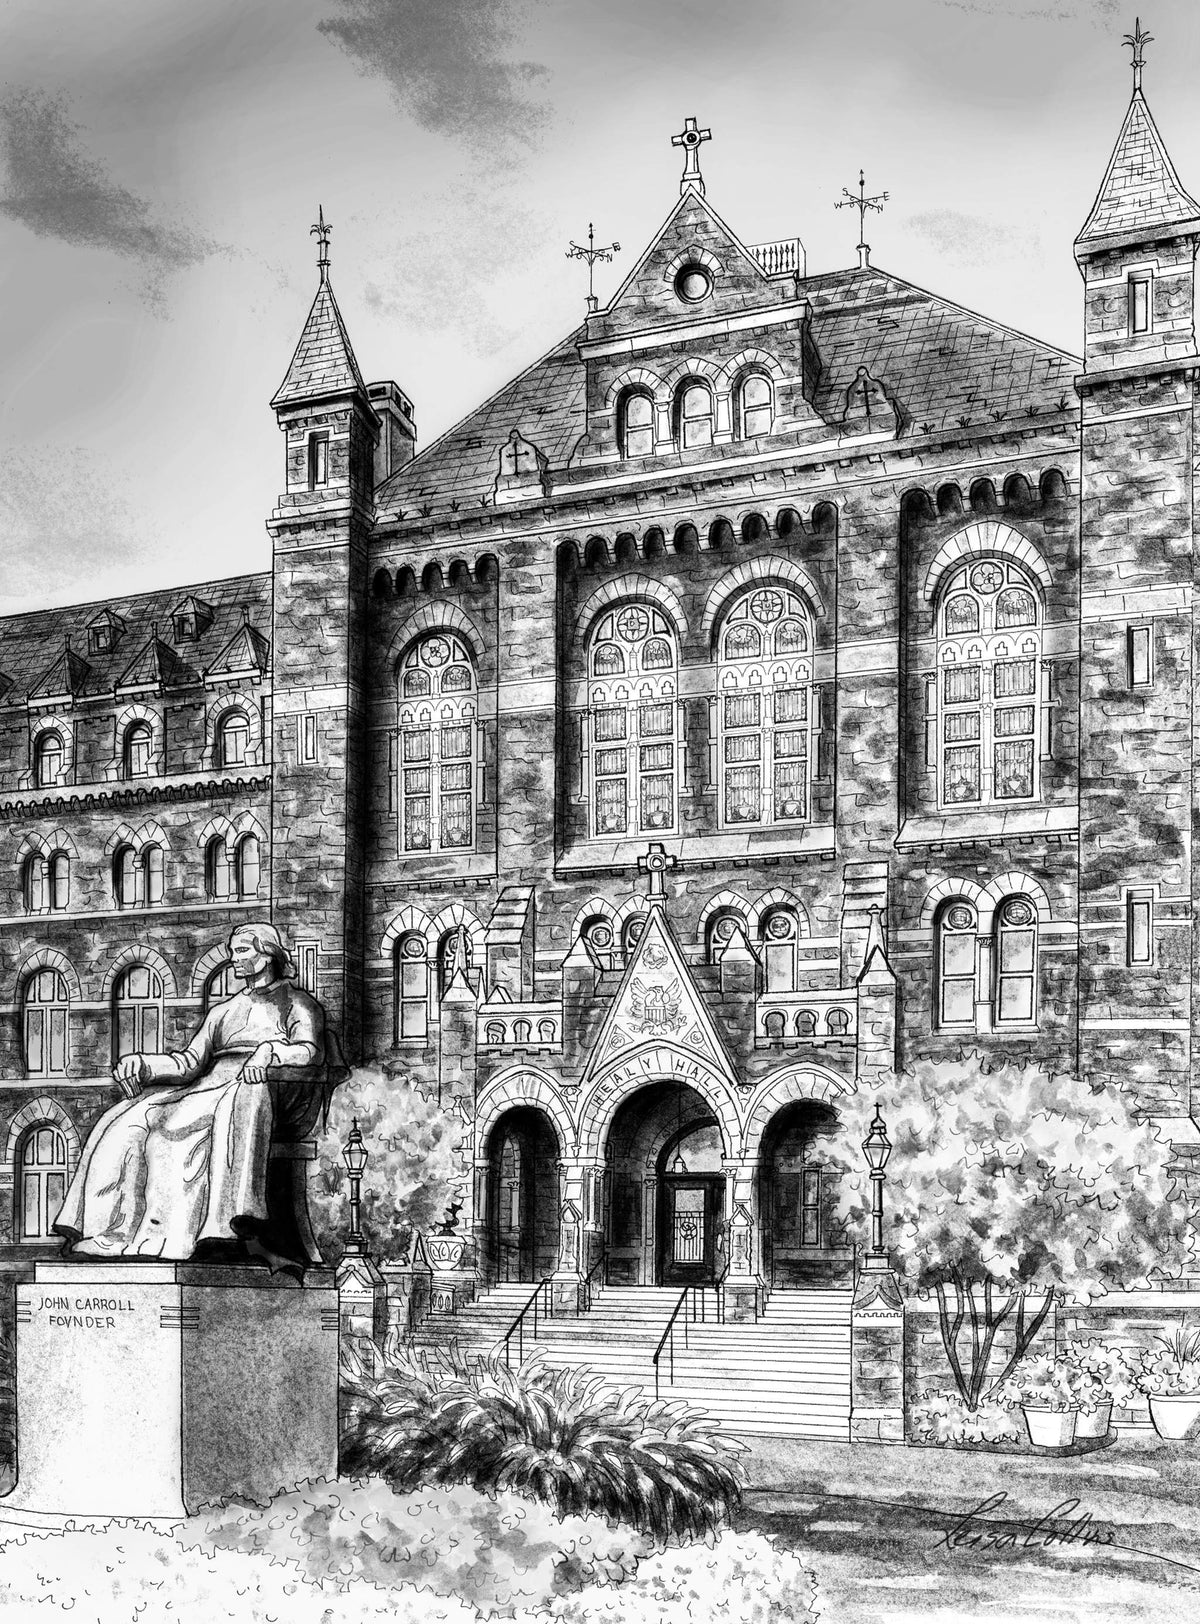 leisa-collins-art-shop - Washington DC Healy Hall, Georgetown University - Black and White - Pen and watercolor